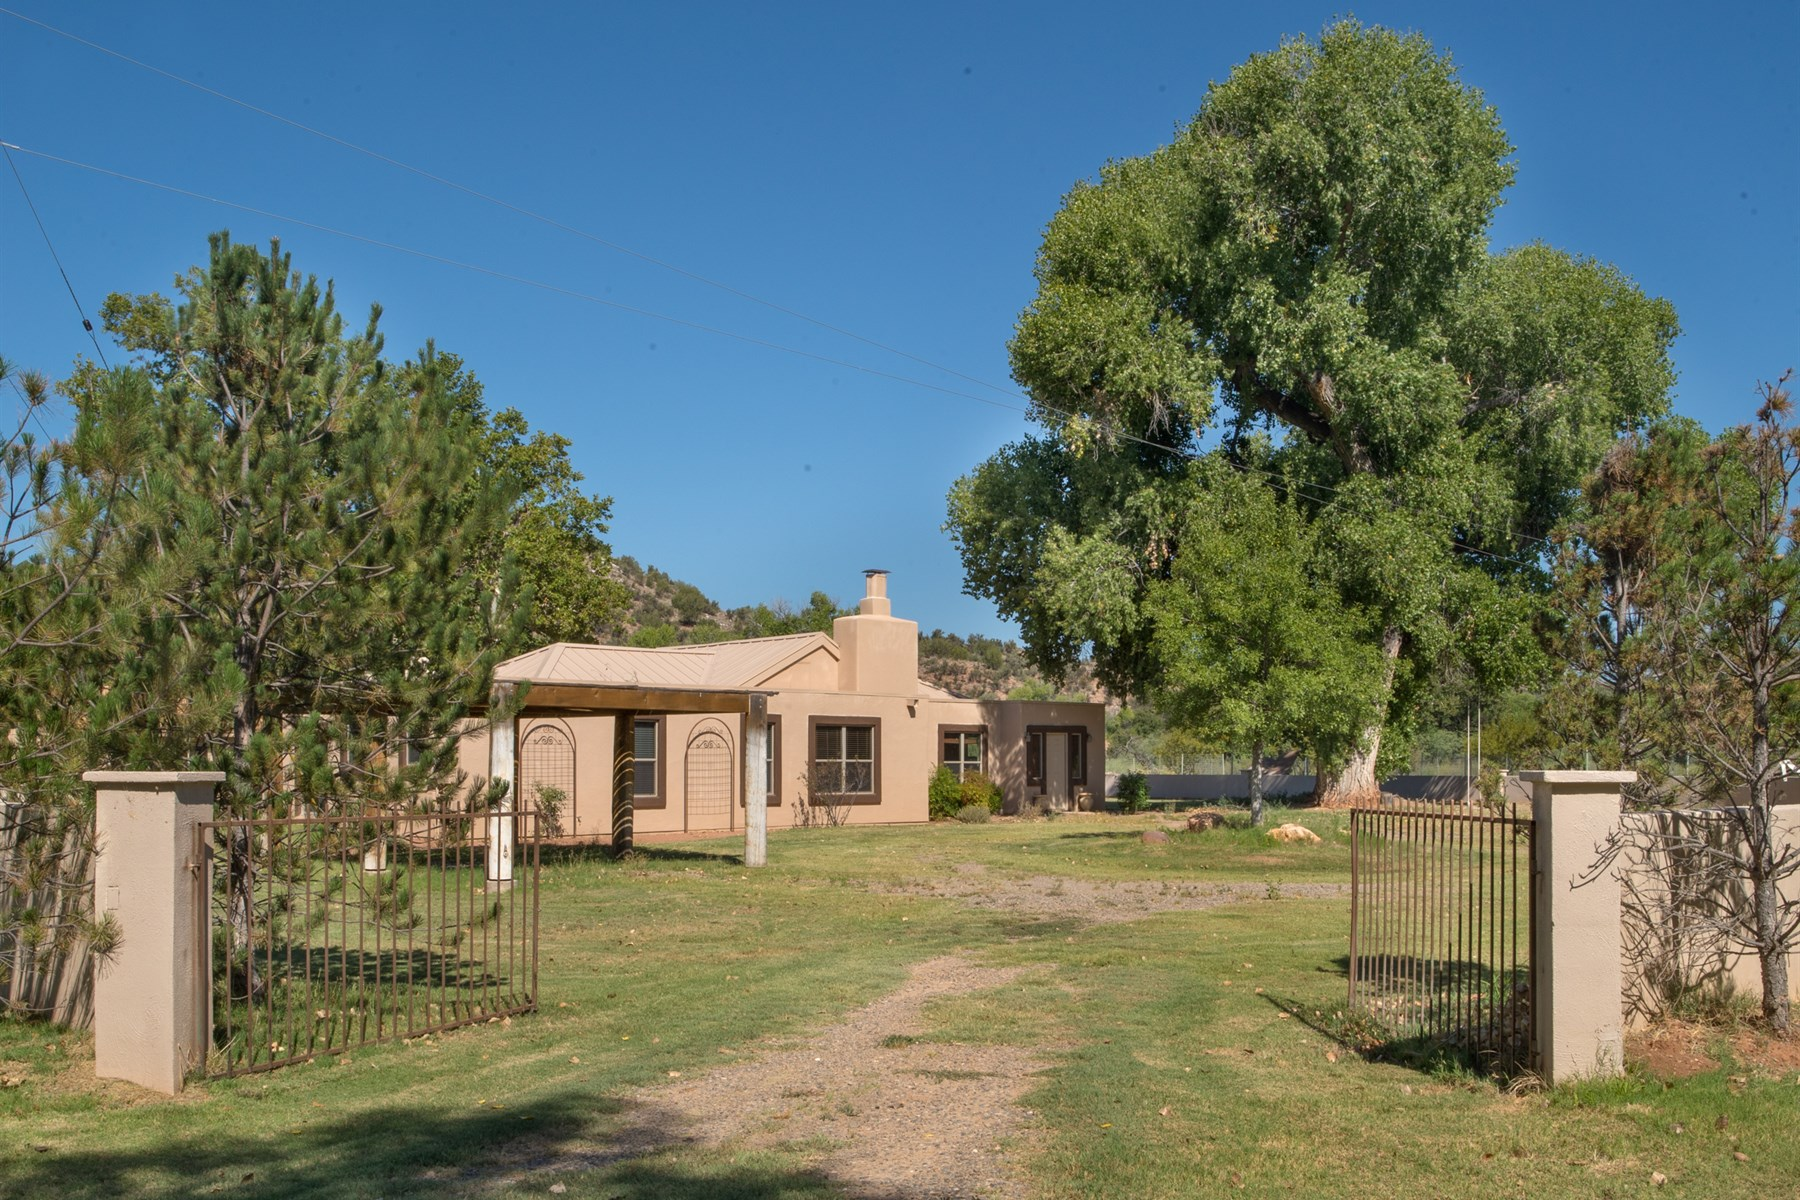 Single Family Home for Sale at Special 11 Acre Oak Creek frontage land 105 S Vertholer Ln Cornville, Arizona, 86325 United States